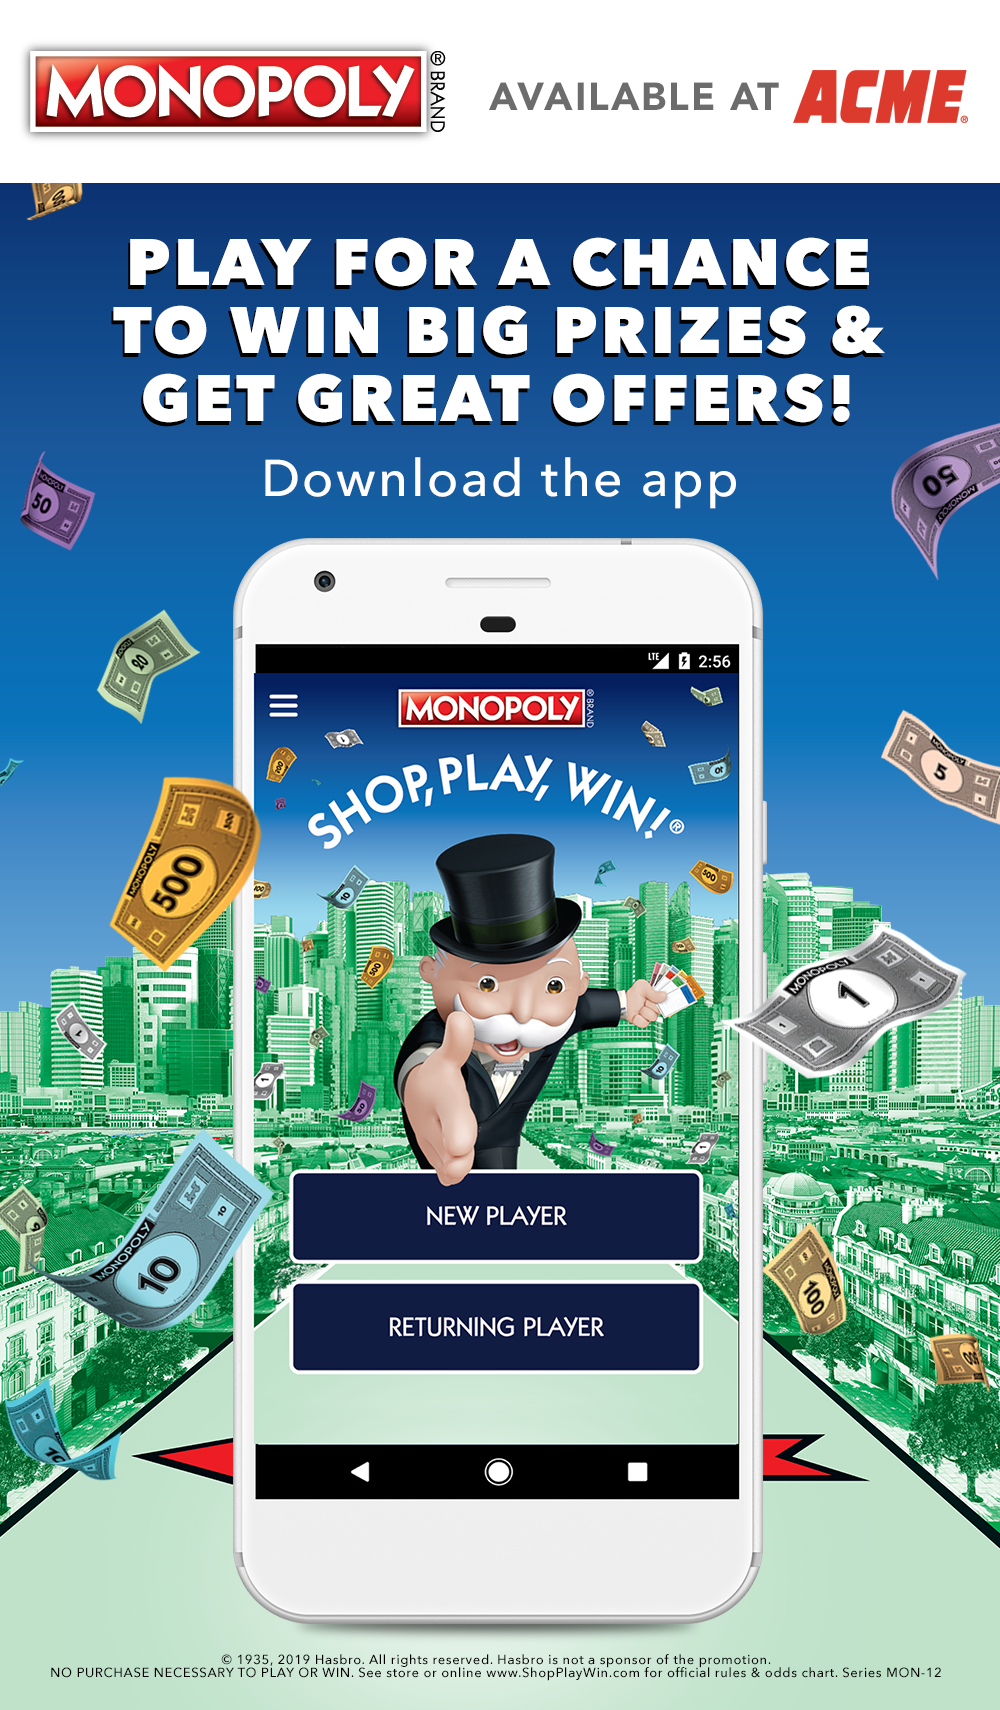 Download the just for U® app and score digital coupons for